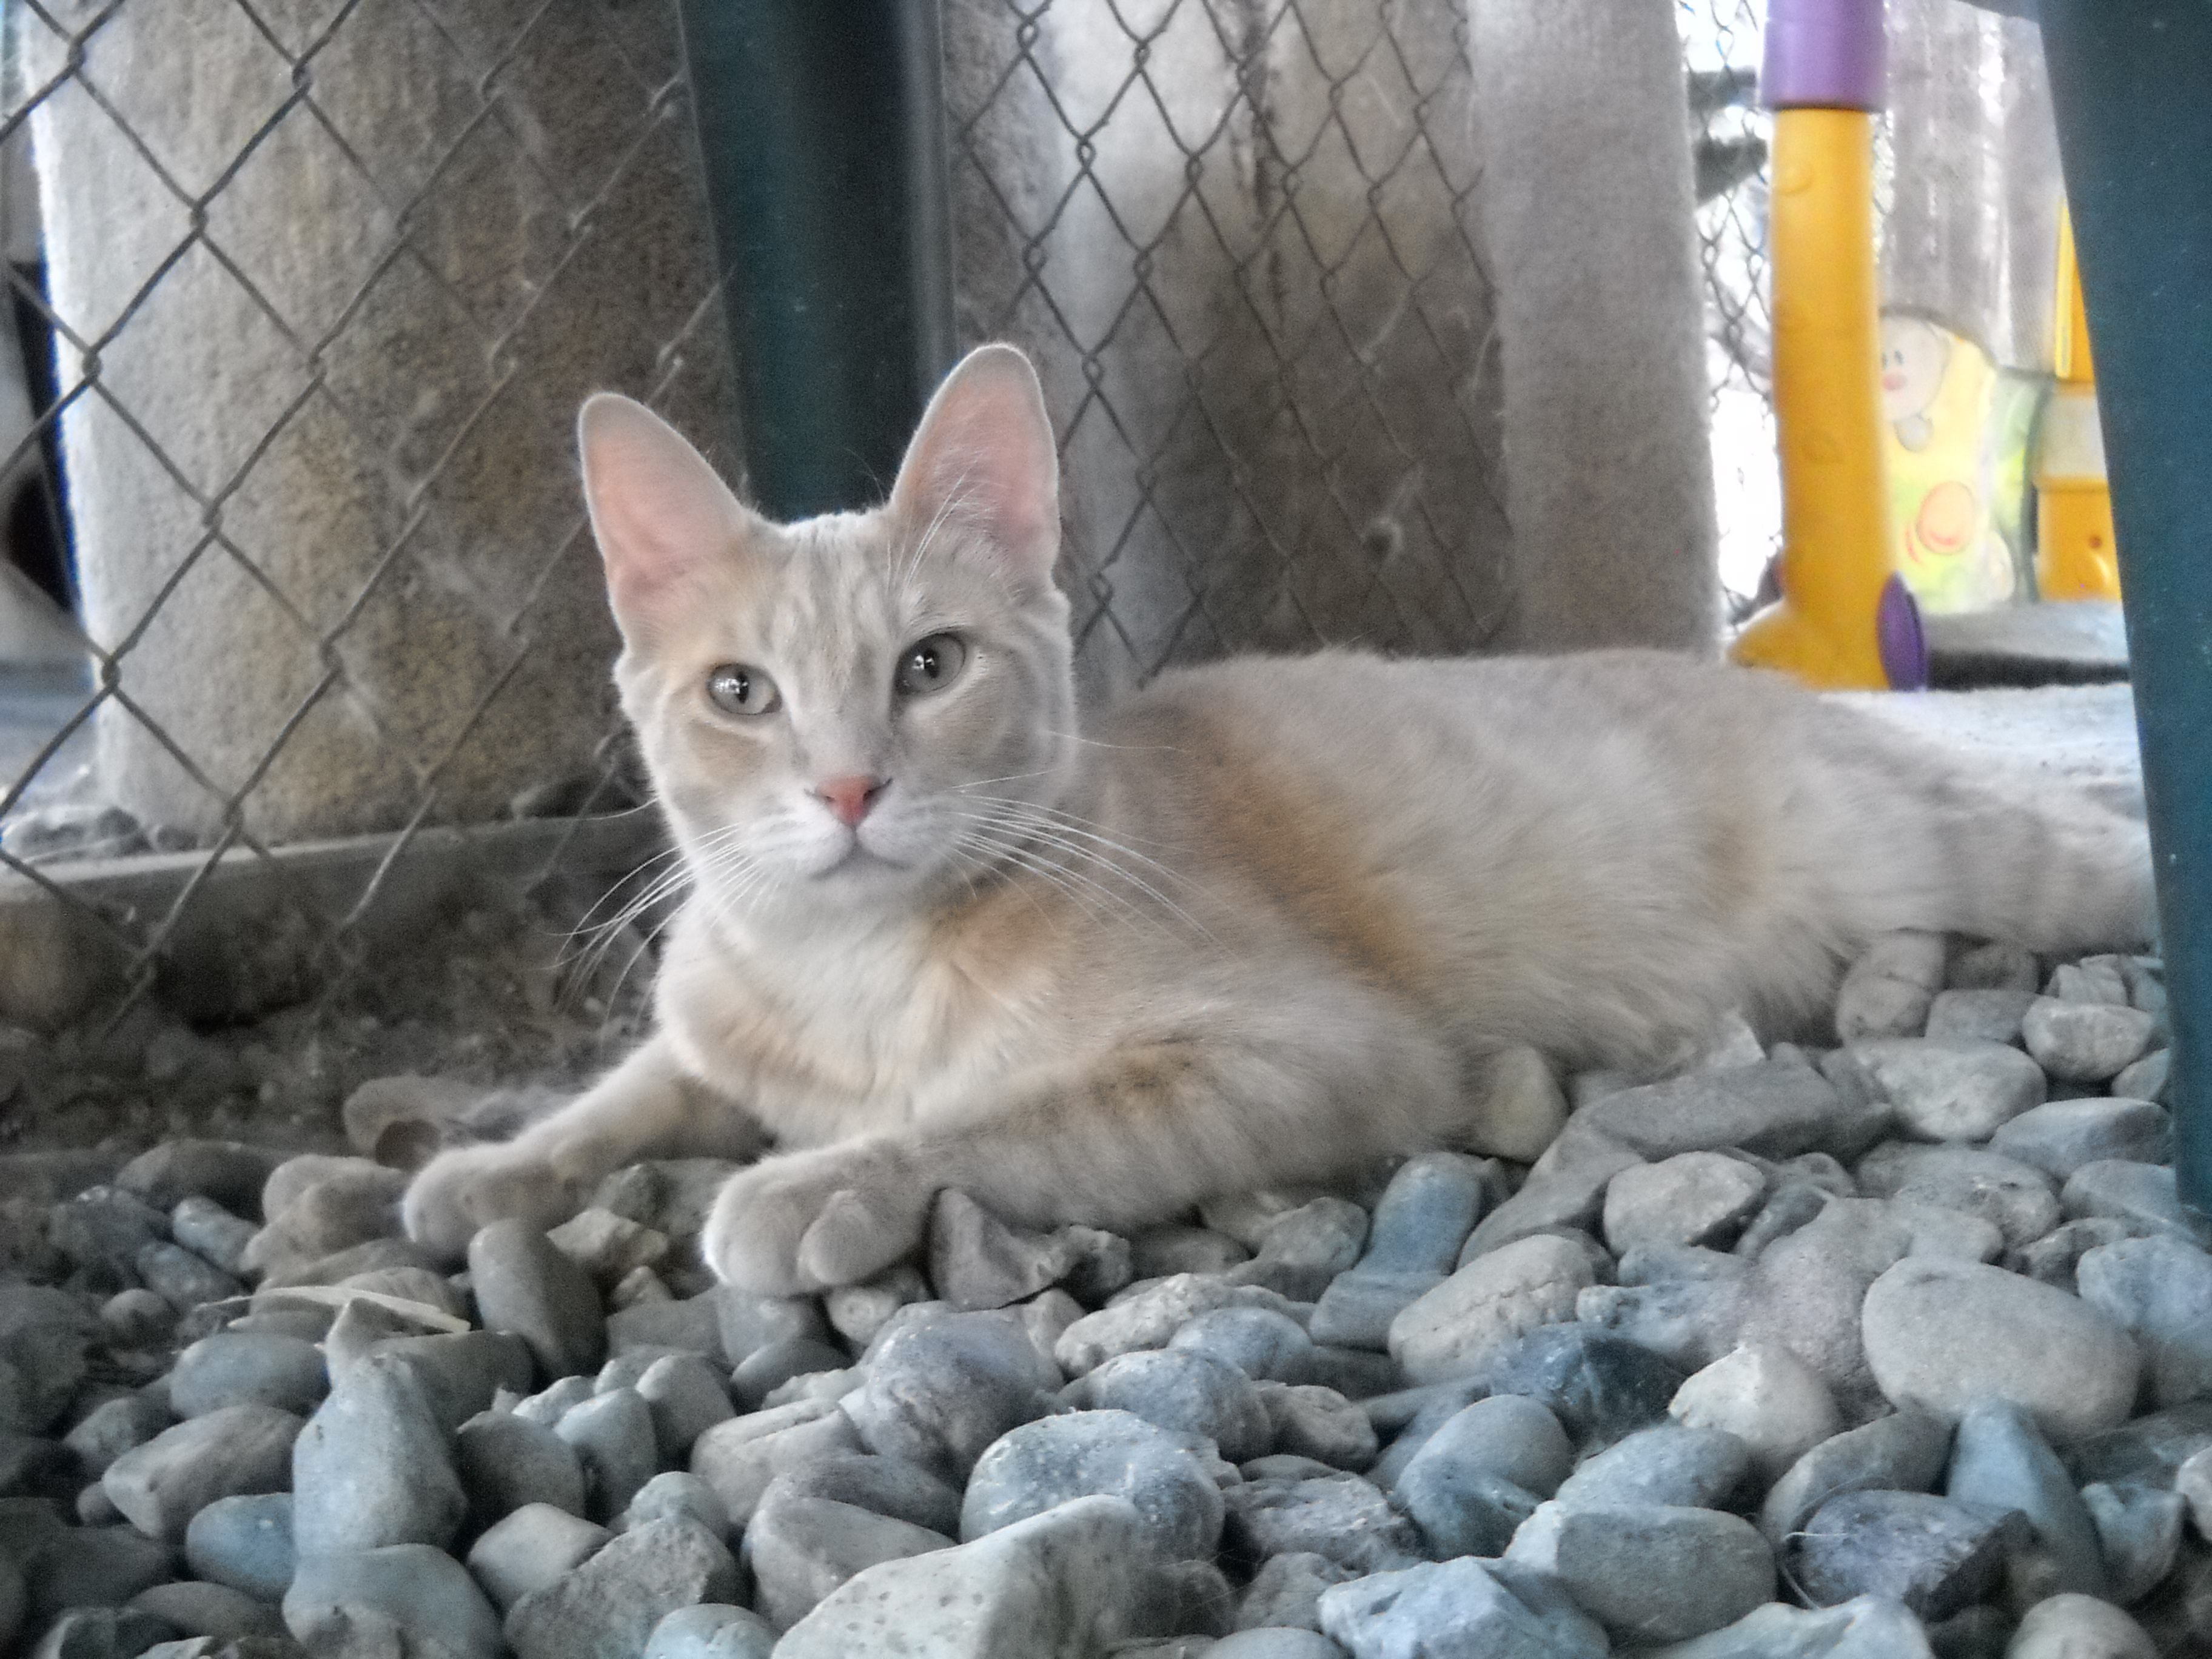 Pretzel is 1yearold cat with a dilute ivory/orange short